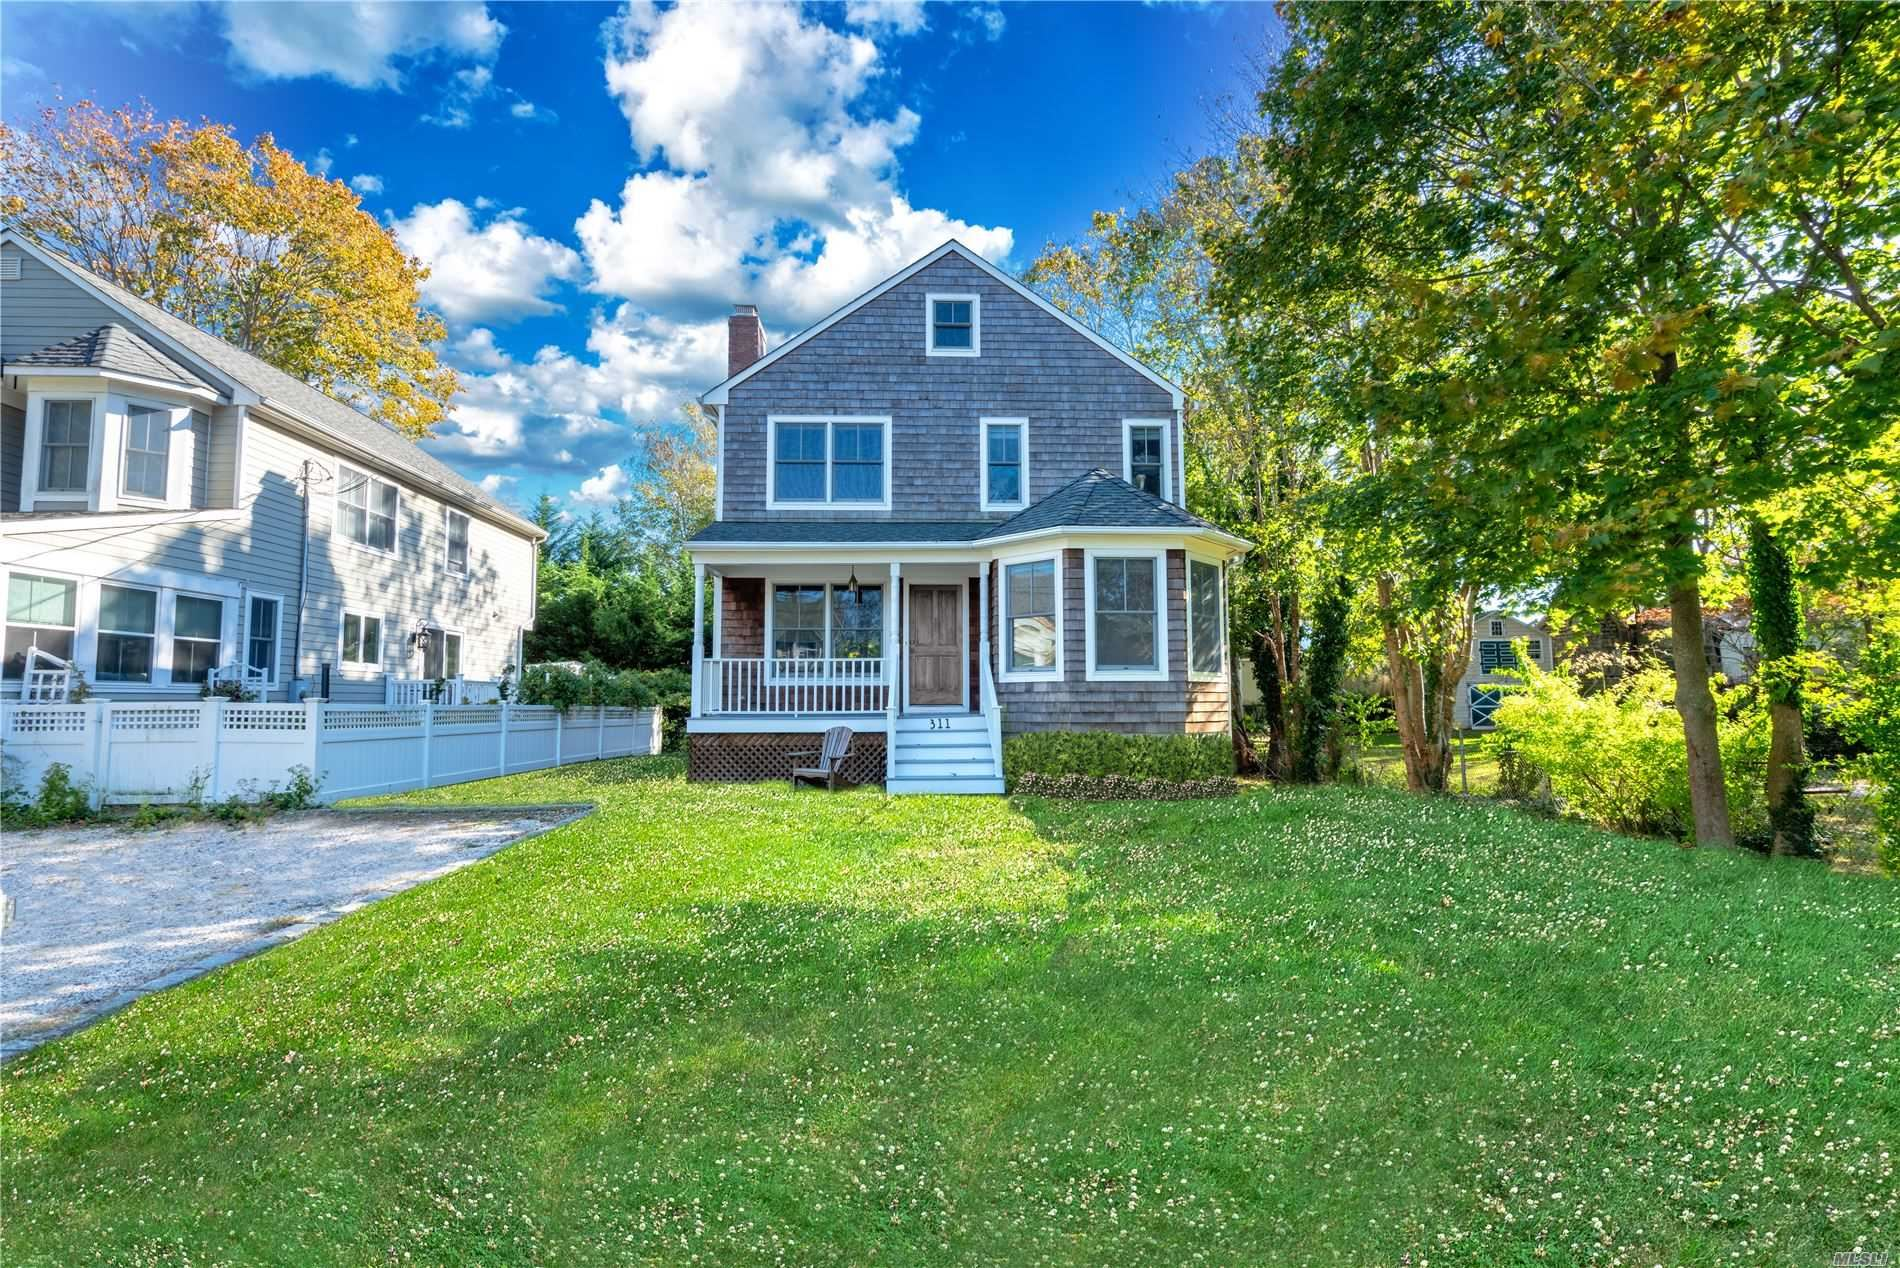 311 Bridge Street, Greenport, NY 11944 - MLS#: 3151369